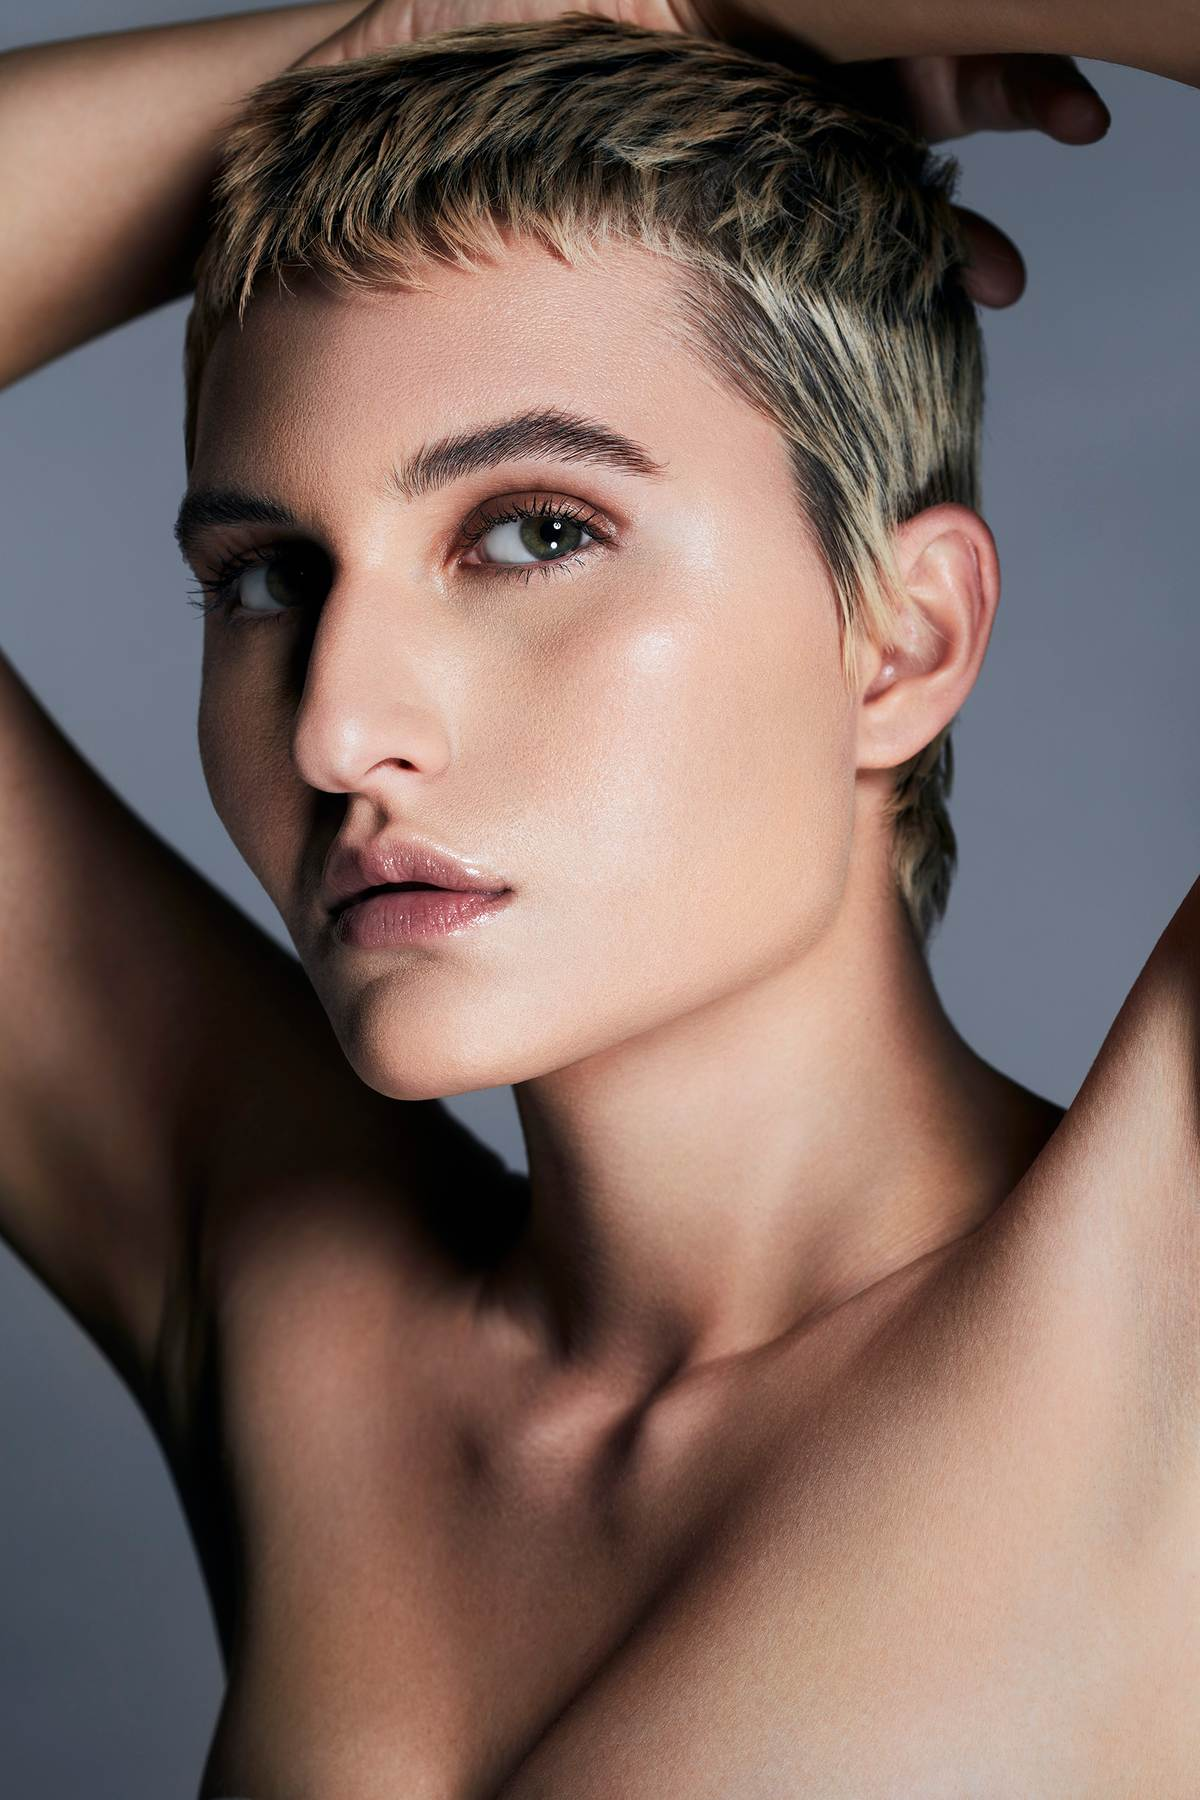 WOMAN WITH SHORT HAIR FACING THE CAMERA